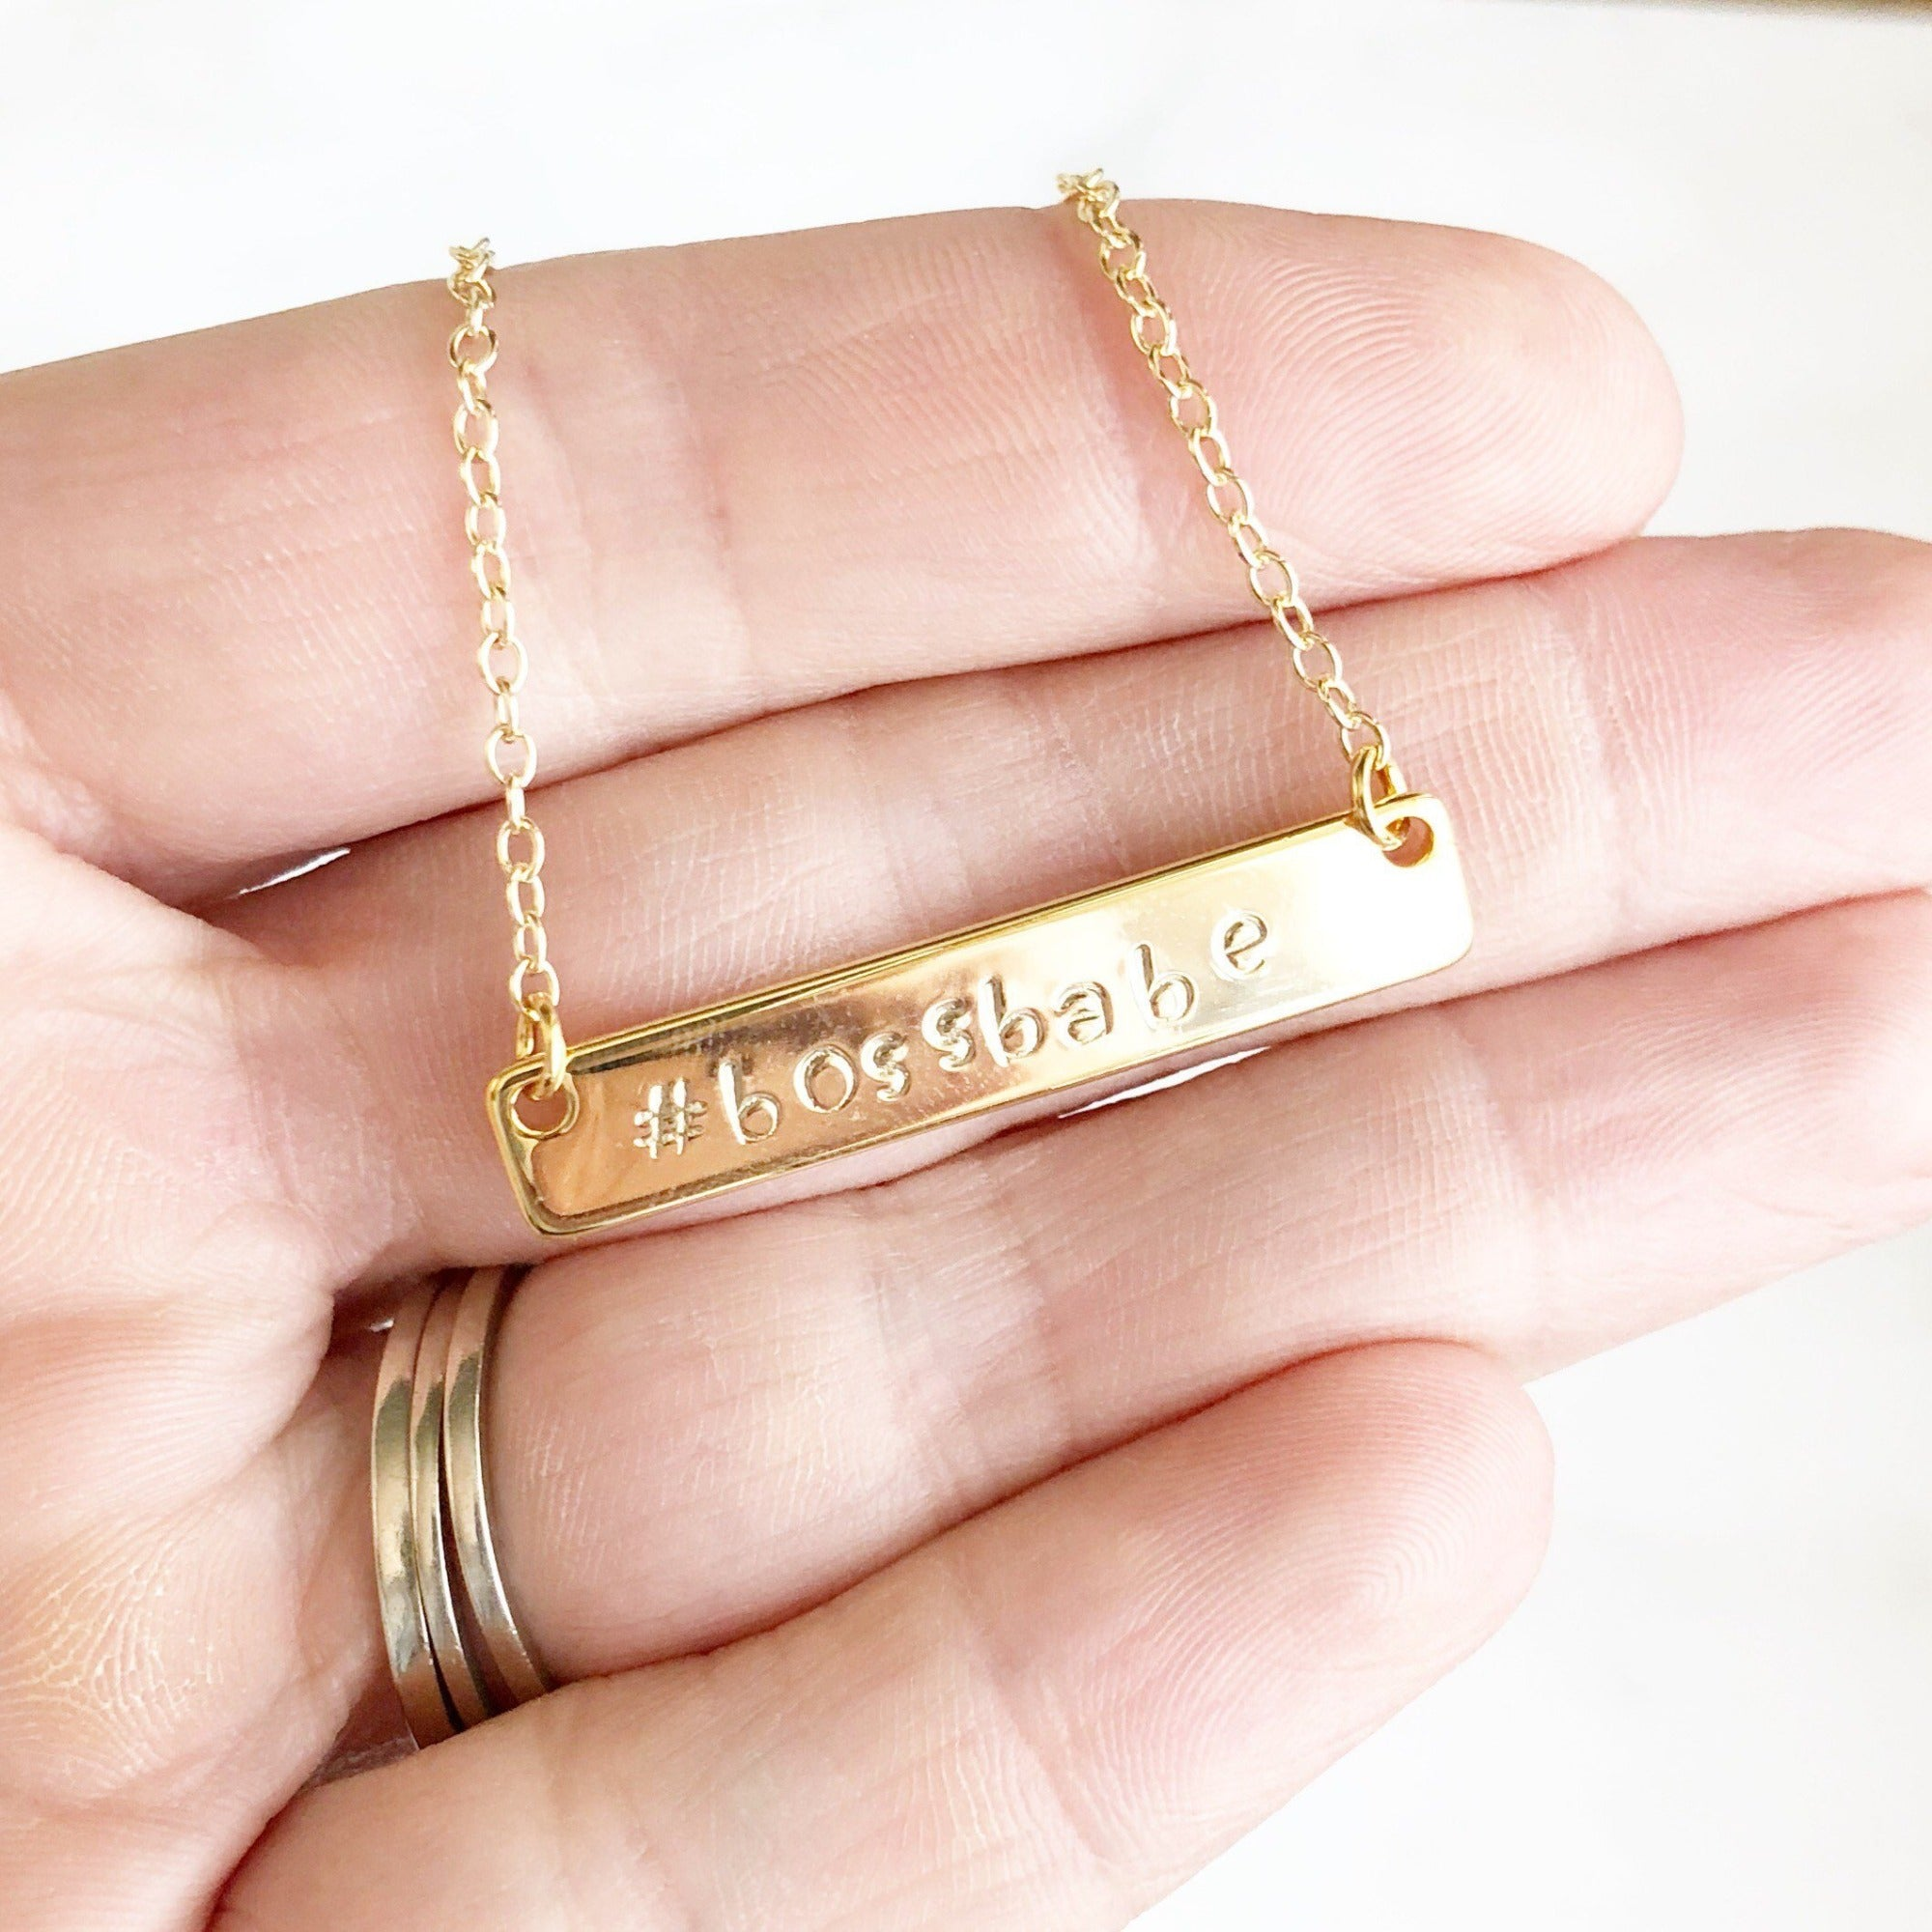 "Bossbabe Necklace. Bar Necklace. Hand Stamped Bar Necklace. Jewlery Gift. Silver or Gold Bar Necklace. Boss Babe Necklace. 17"" Length"